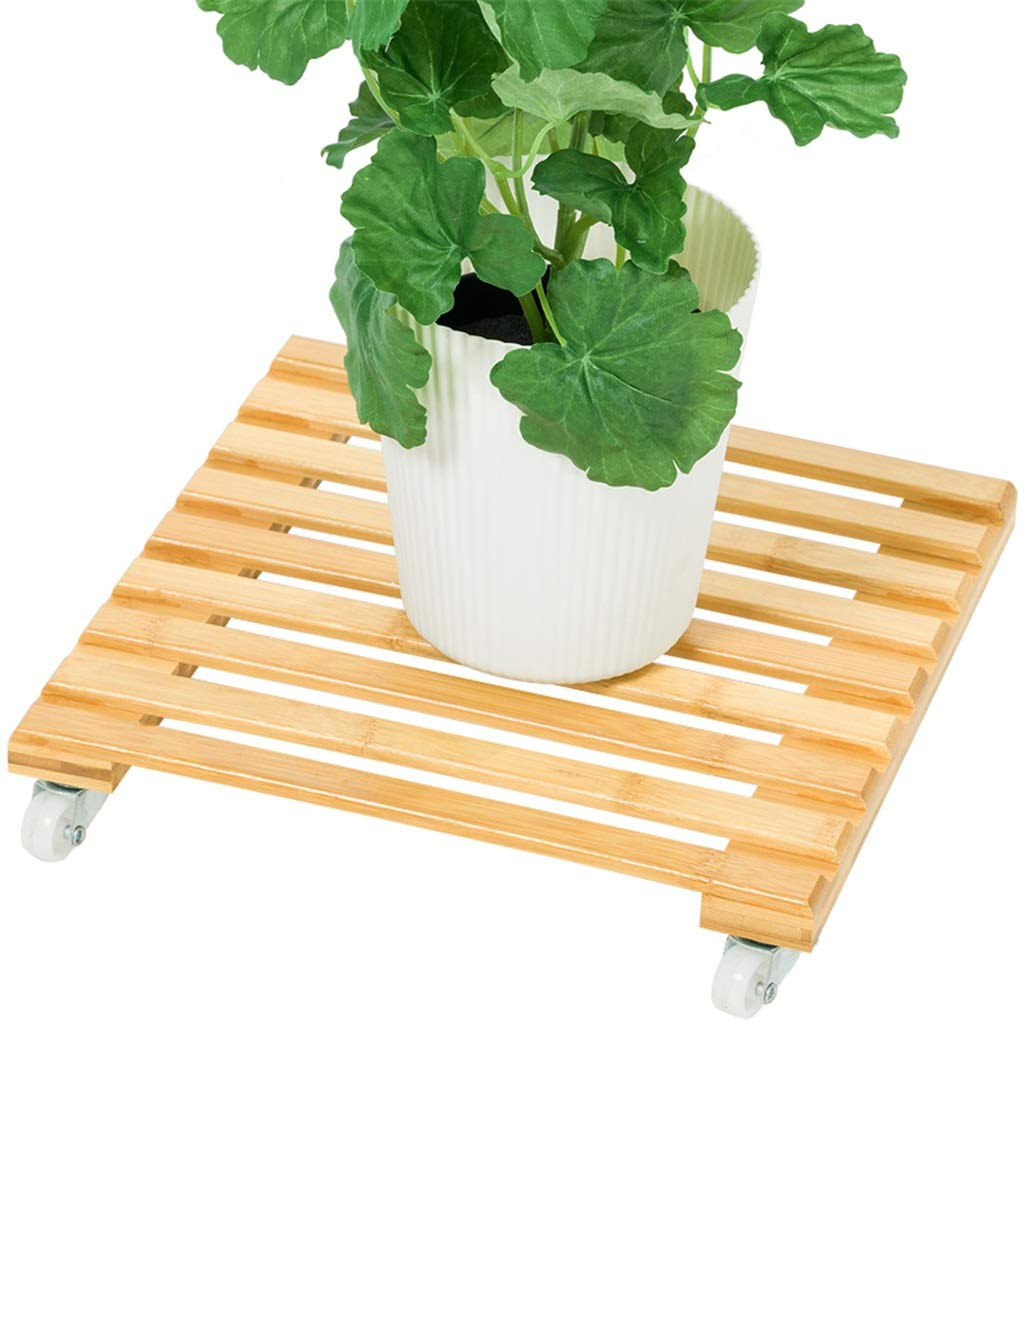 Echotang Bamboo Flowerpot Display Rack Caster Moveable Flower Stand, Light Brown by Echotang